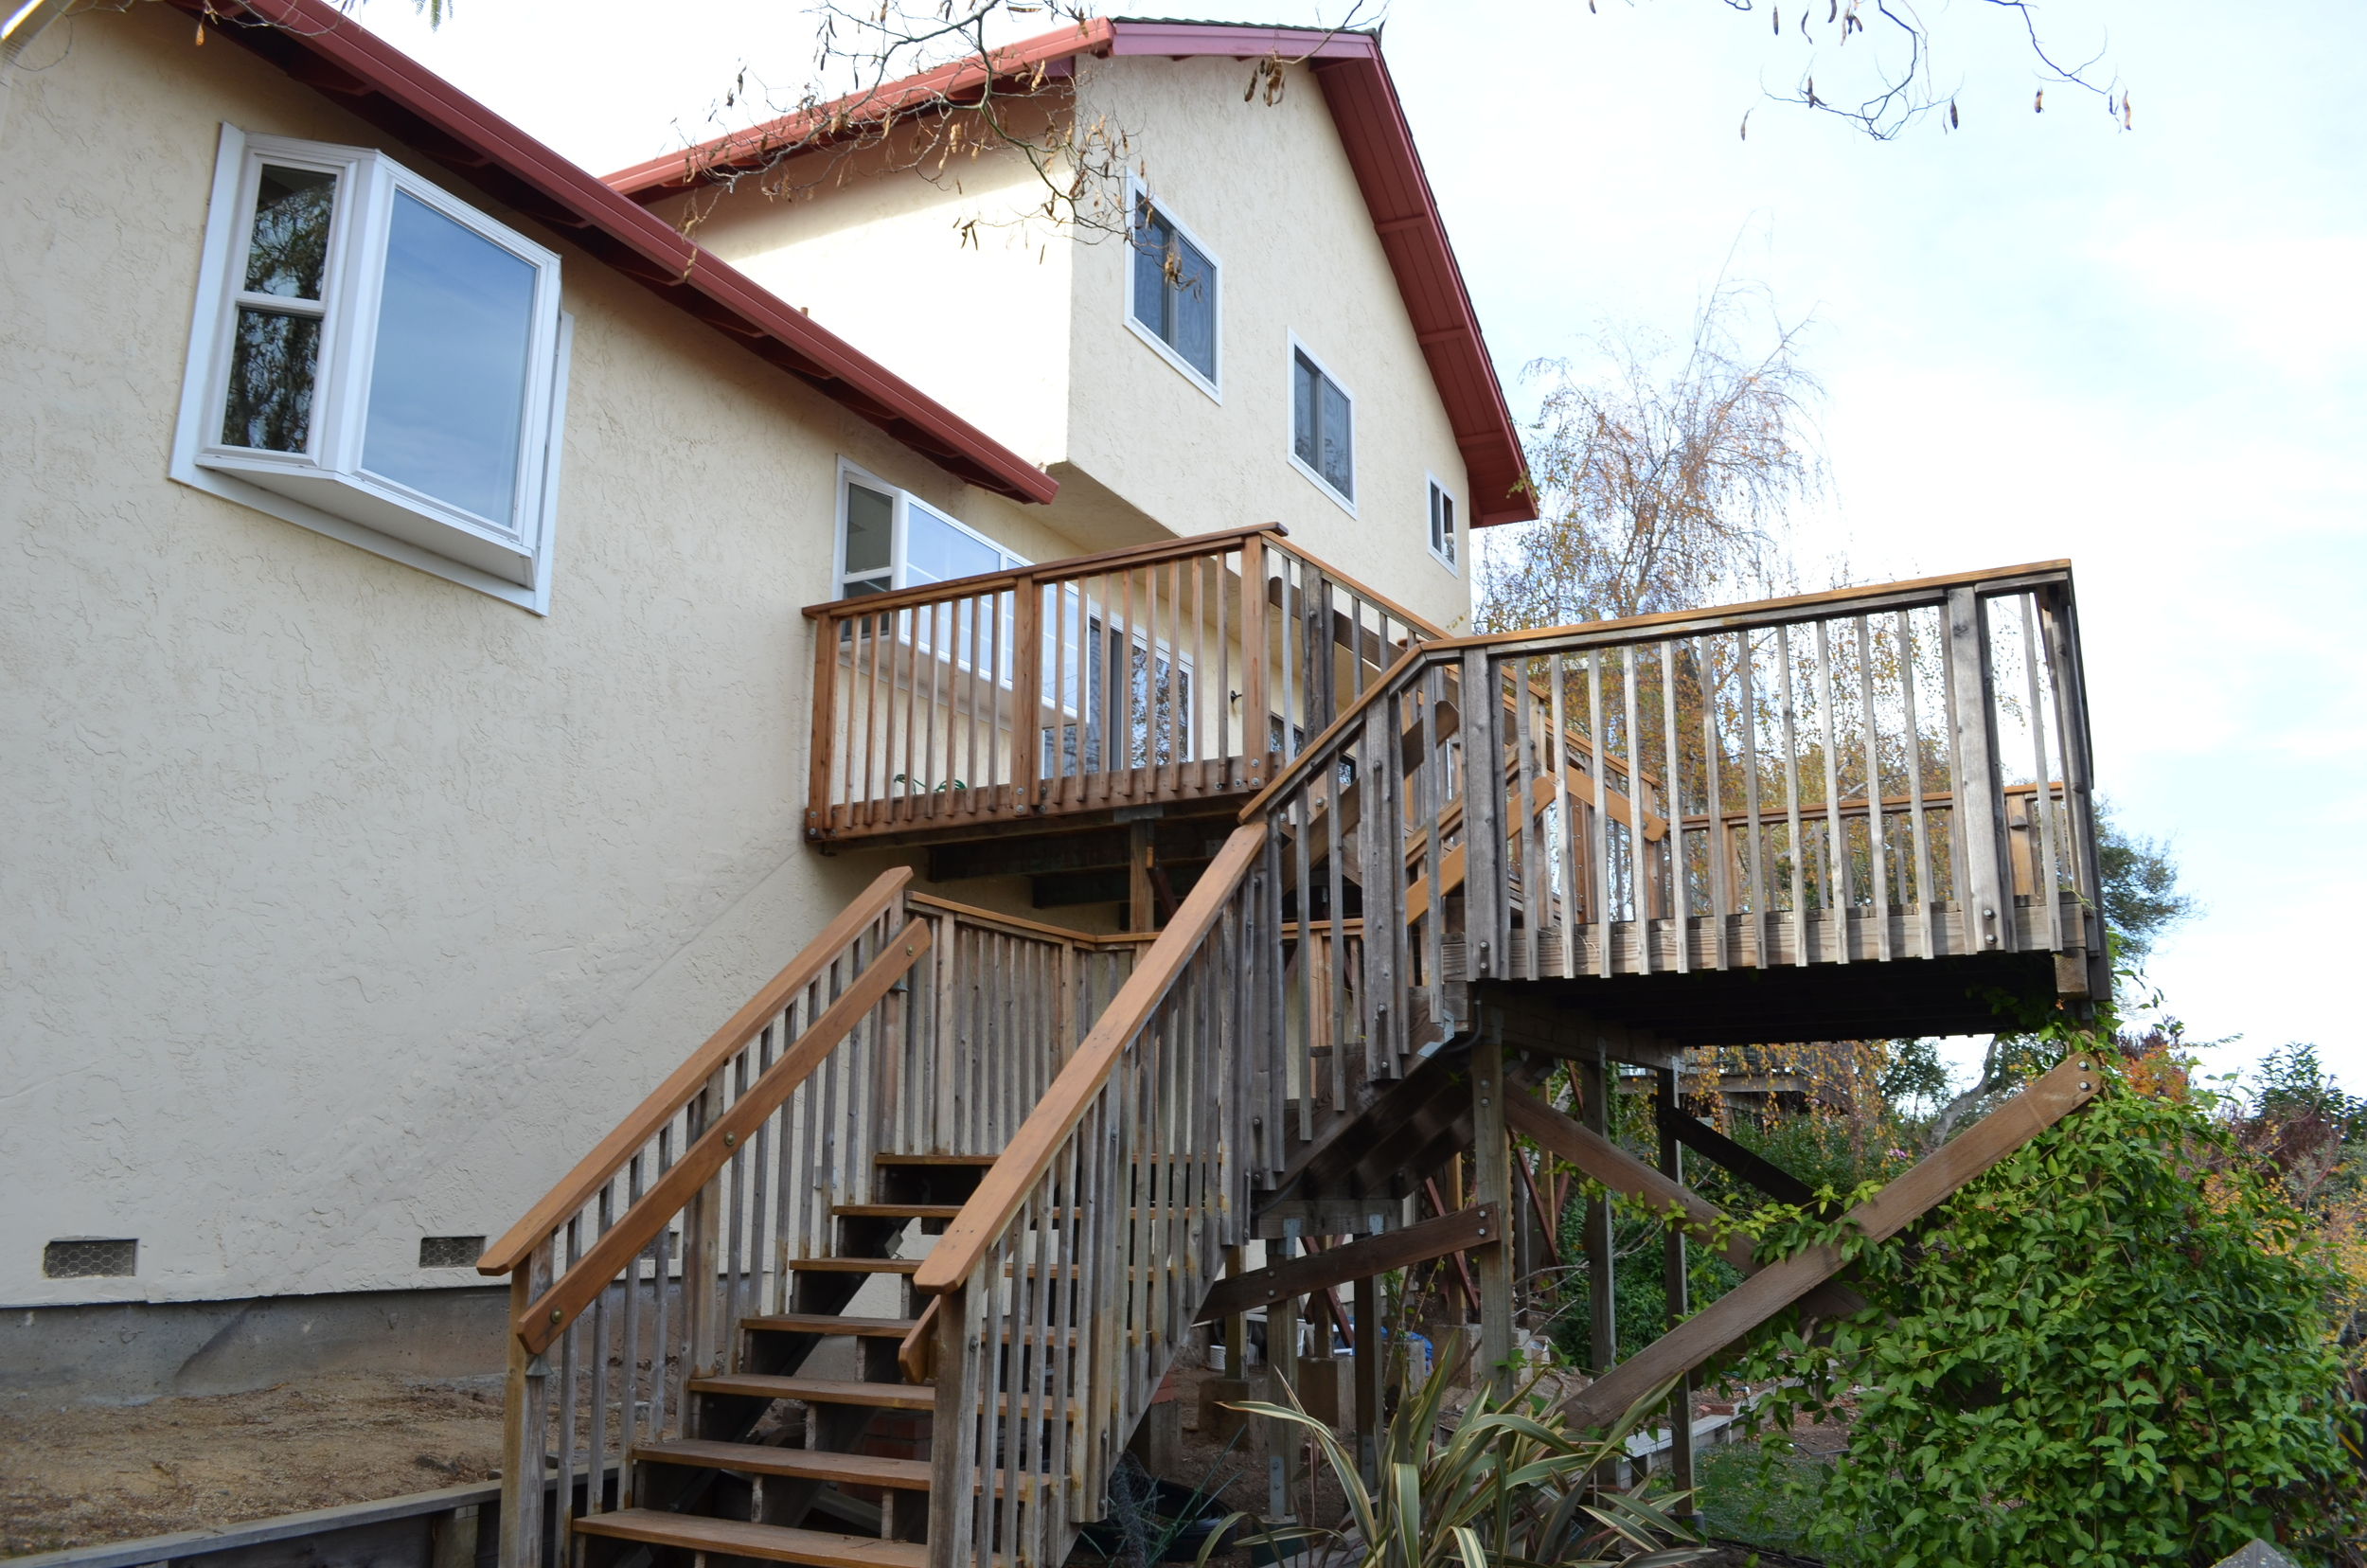 The deck and rear of the existing house.